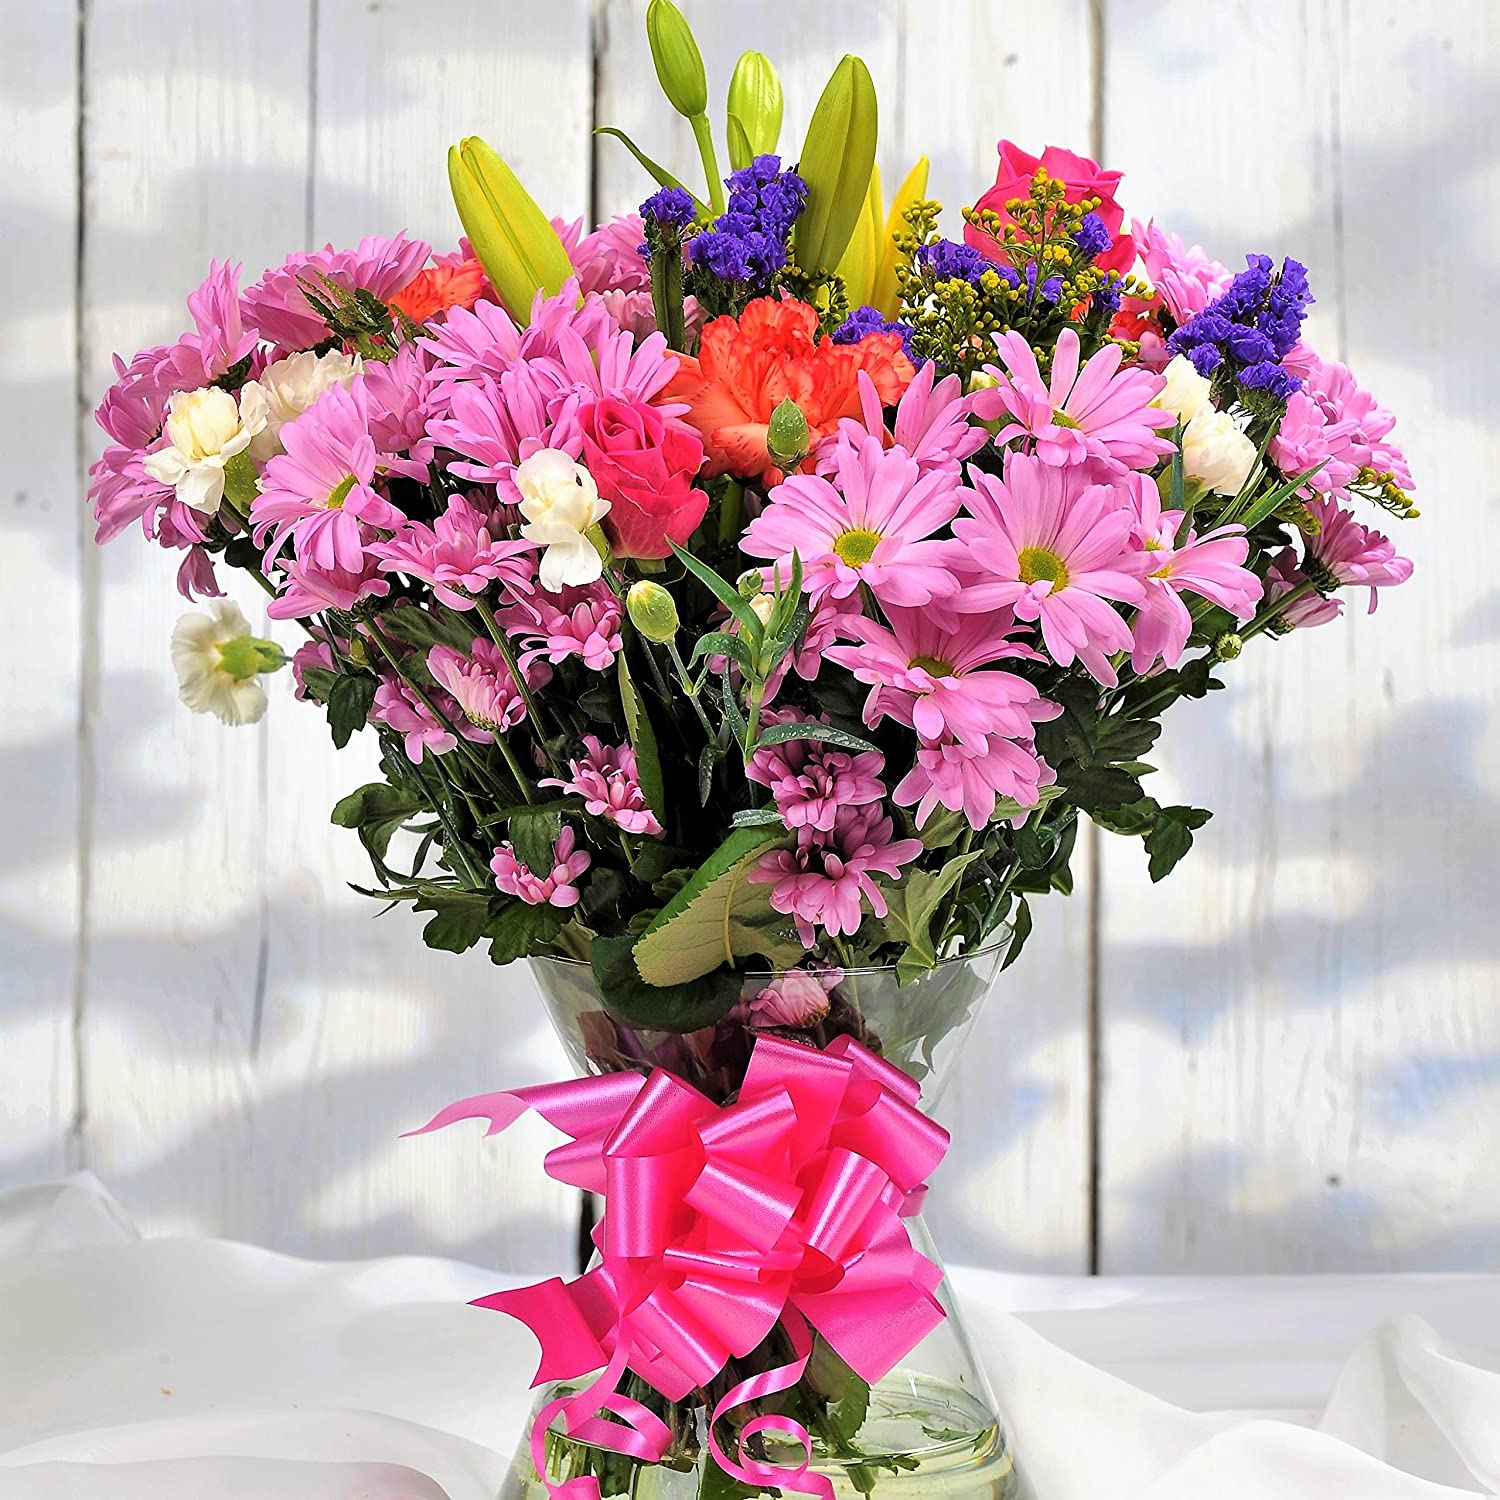 Best Value Fresh Flowers Delivered - Stunning Mixed Flower Bouquet - FREE Next Day Delivery in a 1hr TimeSlot 7 Days a Week - Beautiful Birthday Present or Thank You Gift - Send a Florist Arranged Bouquet Anywhere in the UK Homeland Florists